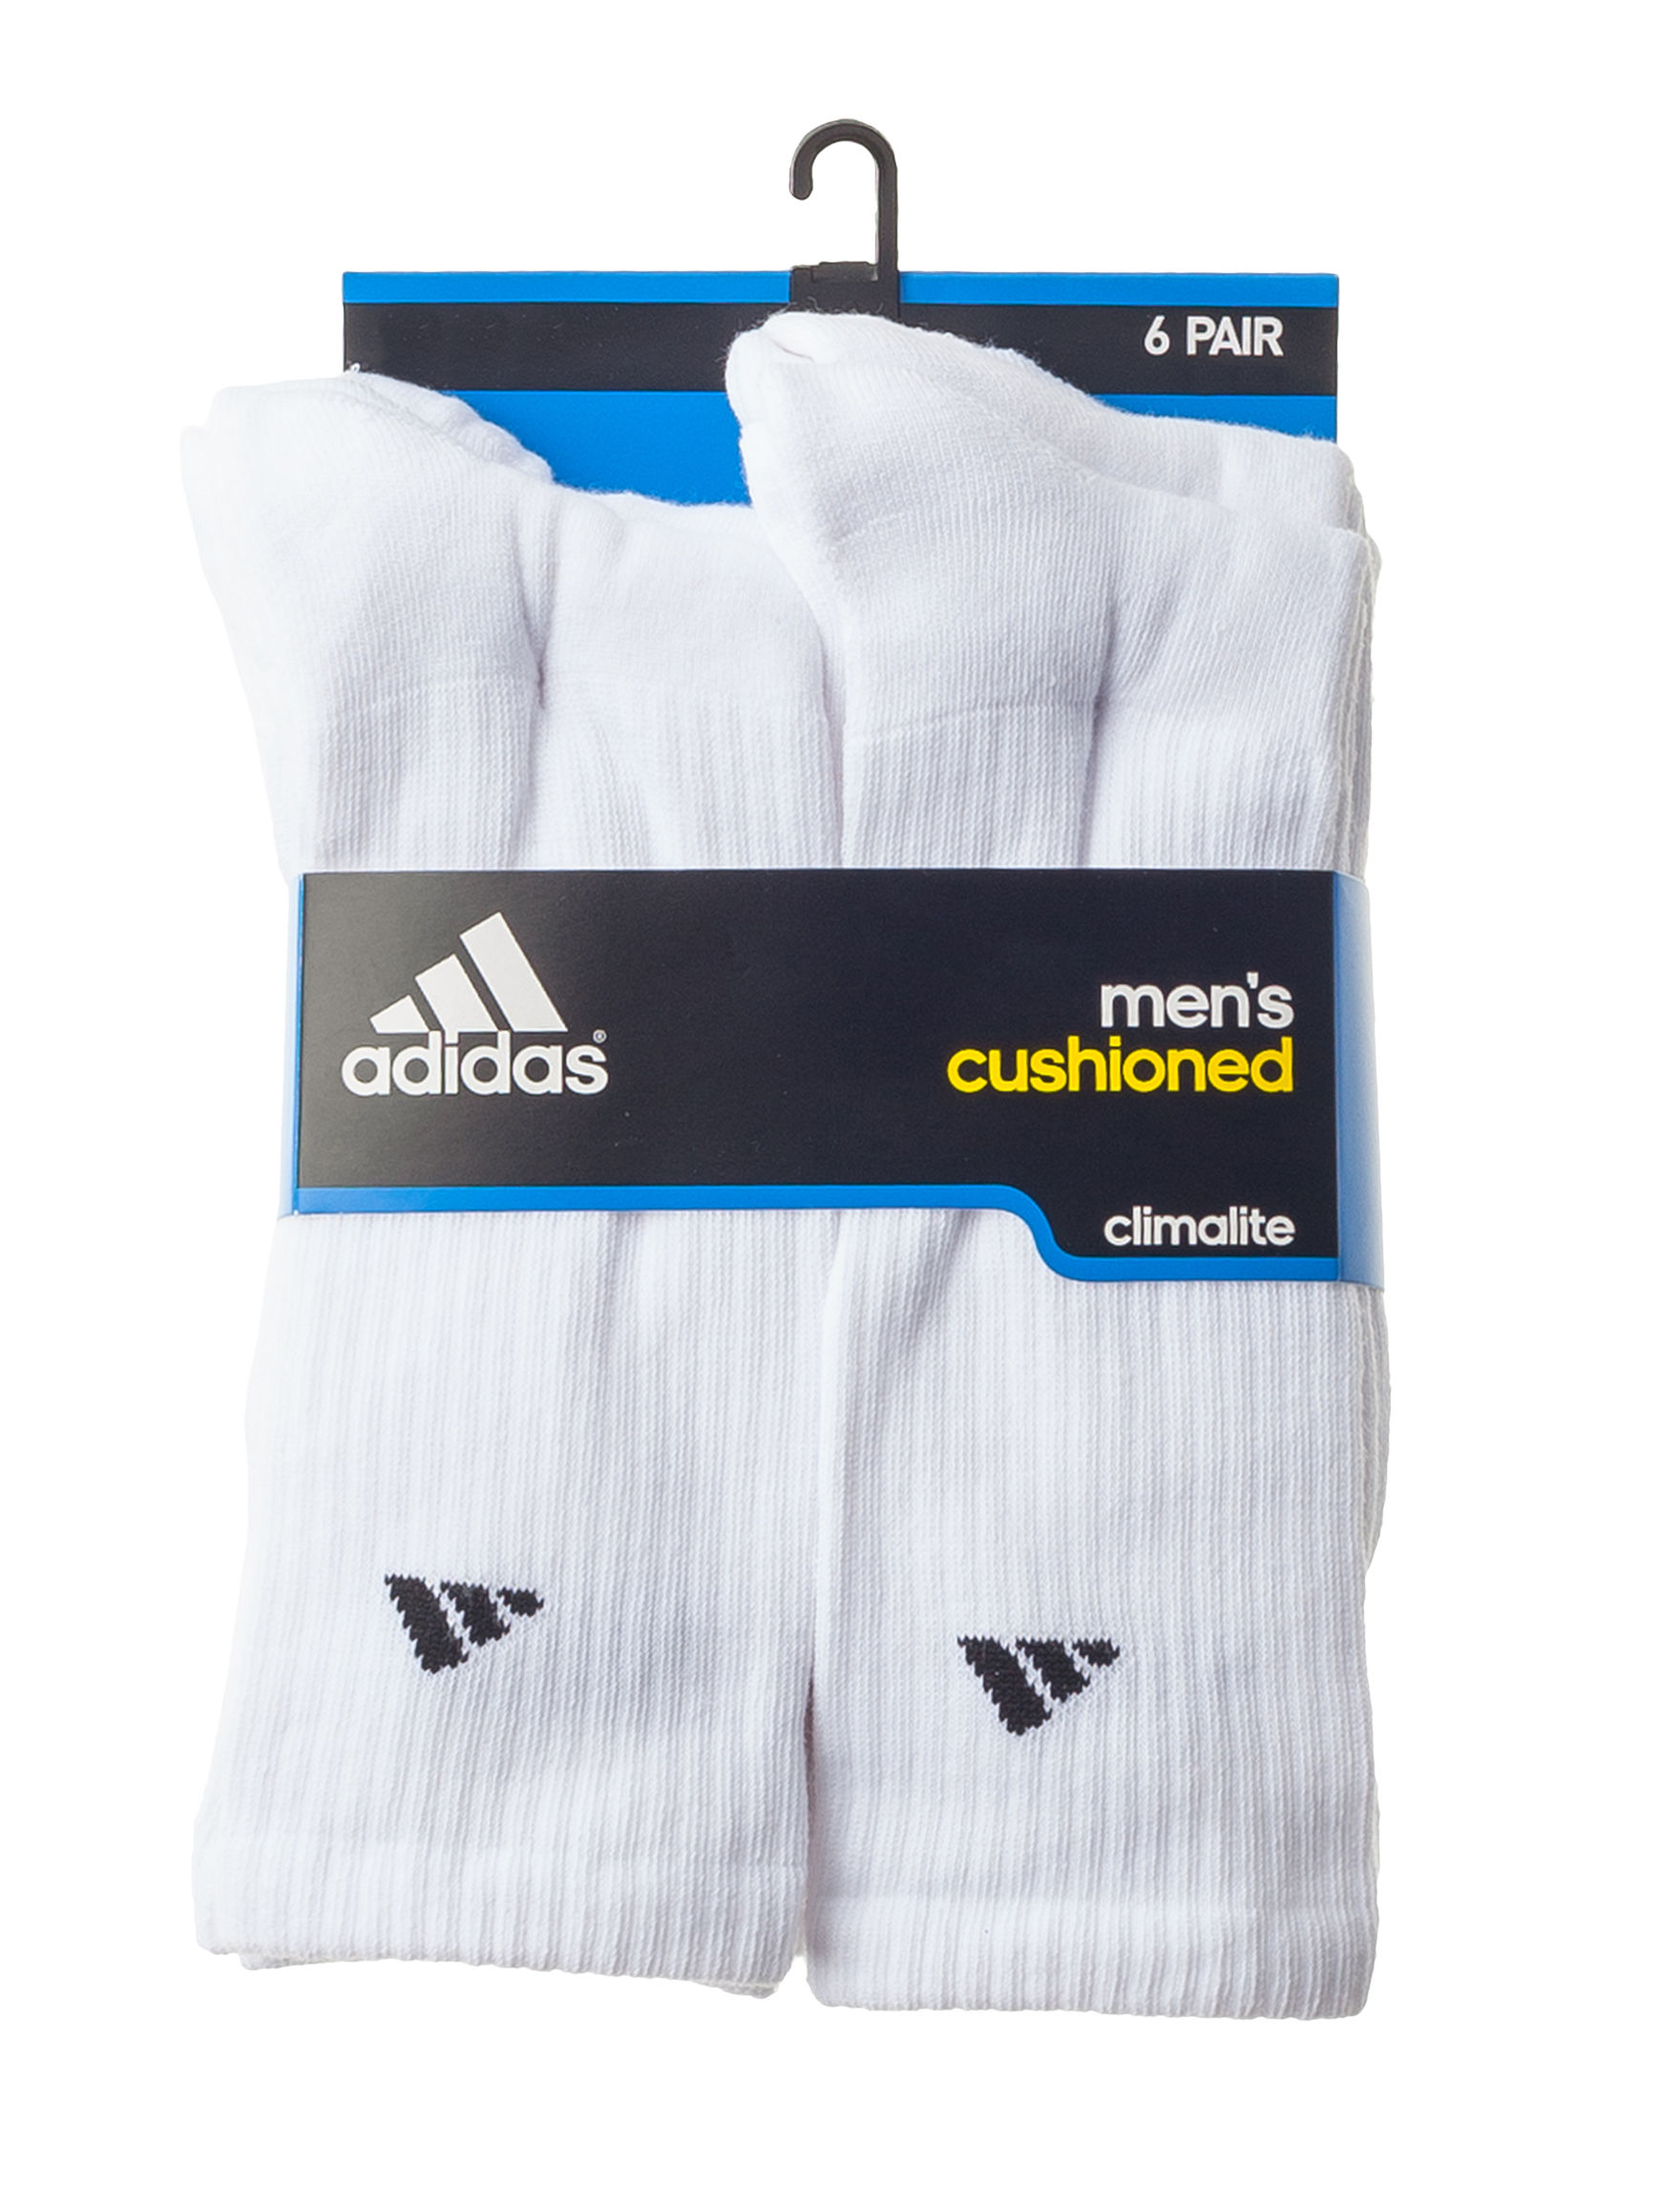 Adidas White Socks